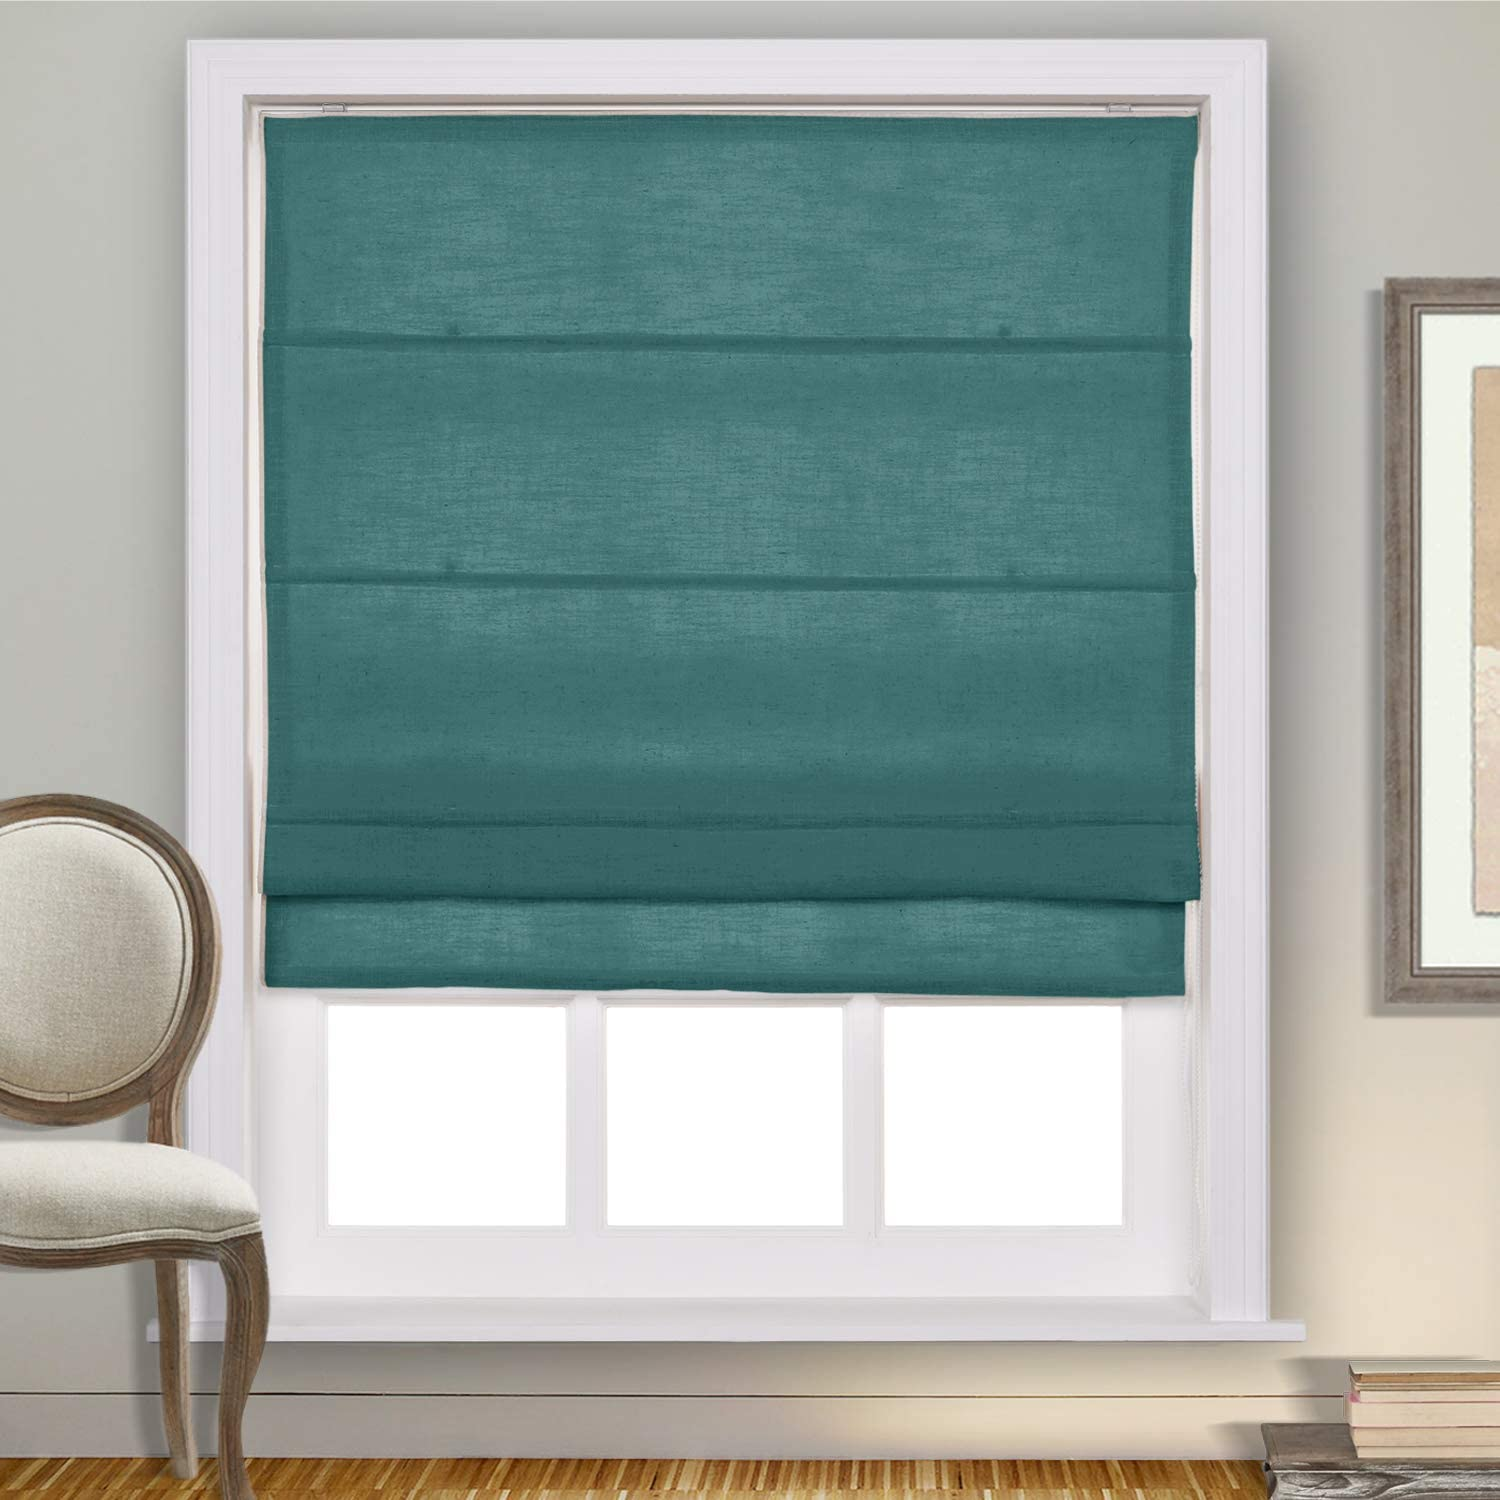 cololeaf Fabric Roman Shades for Kitchen Window, Custom Made Window Blind Treatment Privacy Protect Roman Shade Blind Blackout Light Filtering, Install Hardware Included, Everglade Teal, 1 Piece: Kitchen & Dining